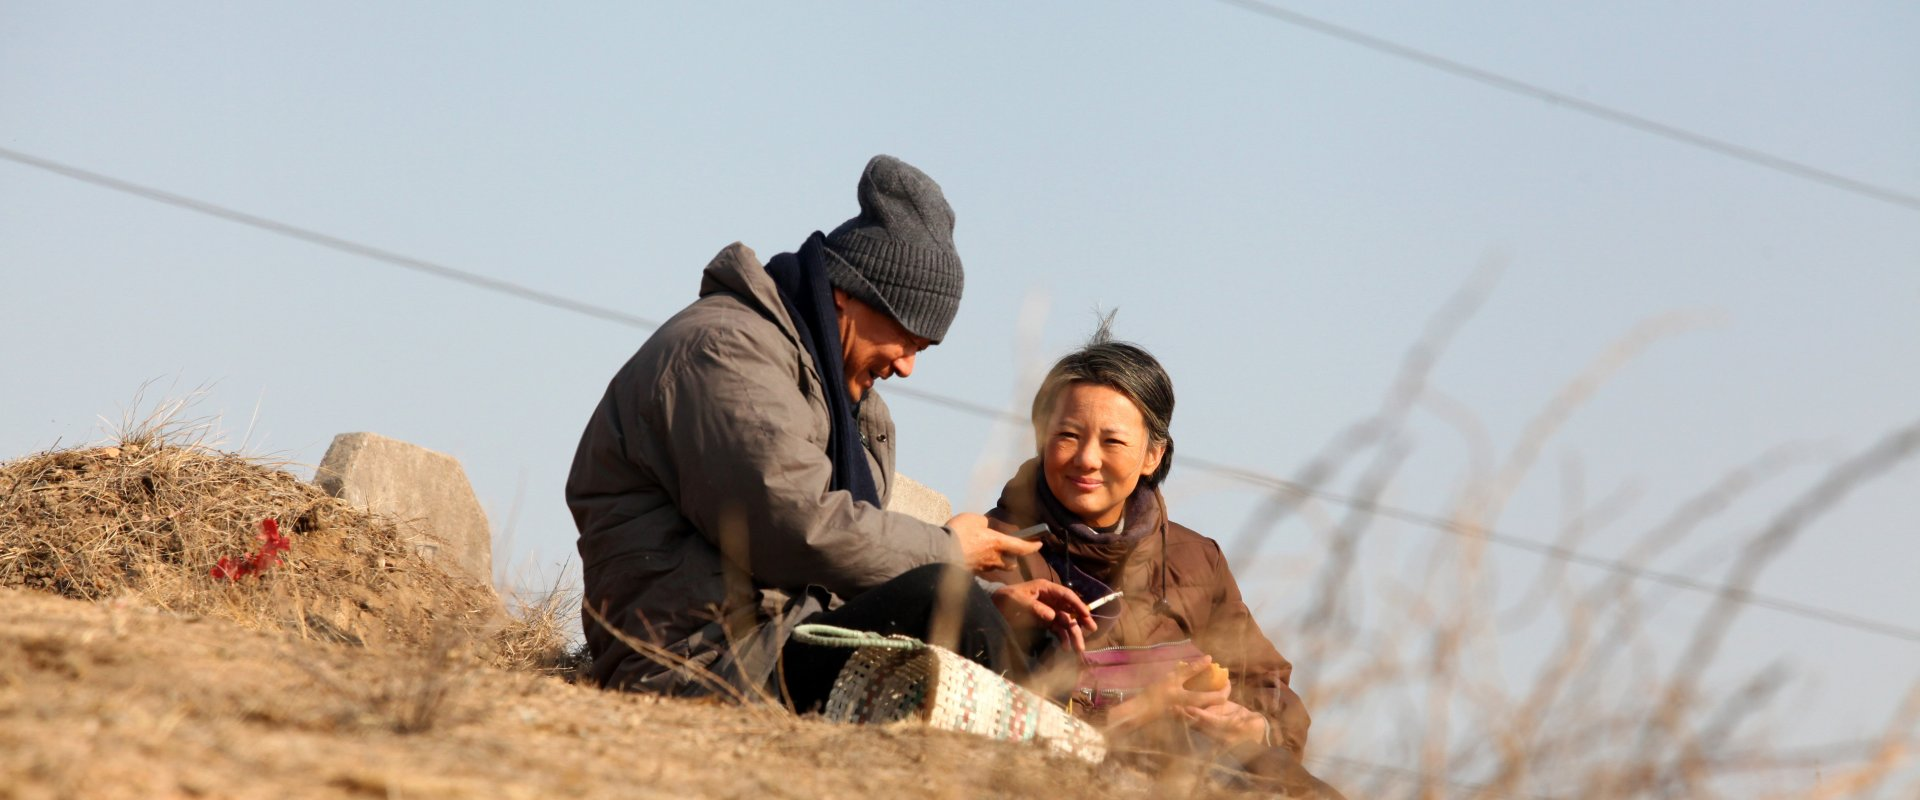 A man and a woman sit on a barren hillside, looking happily